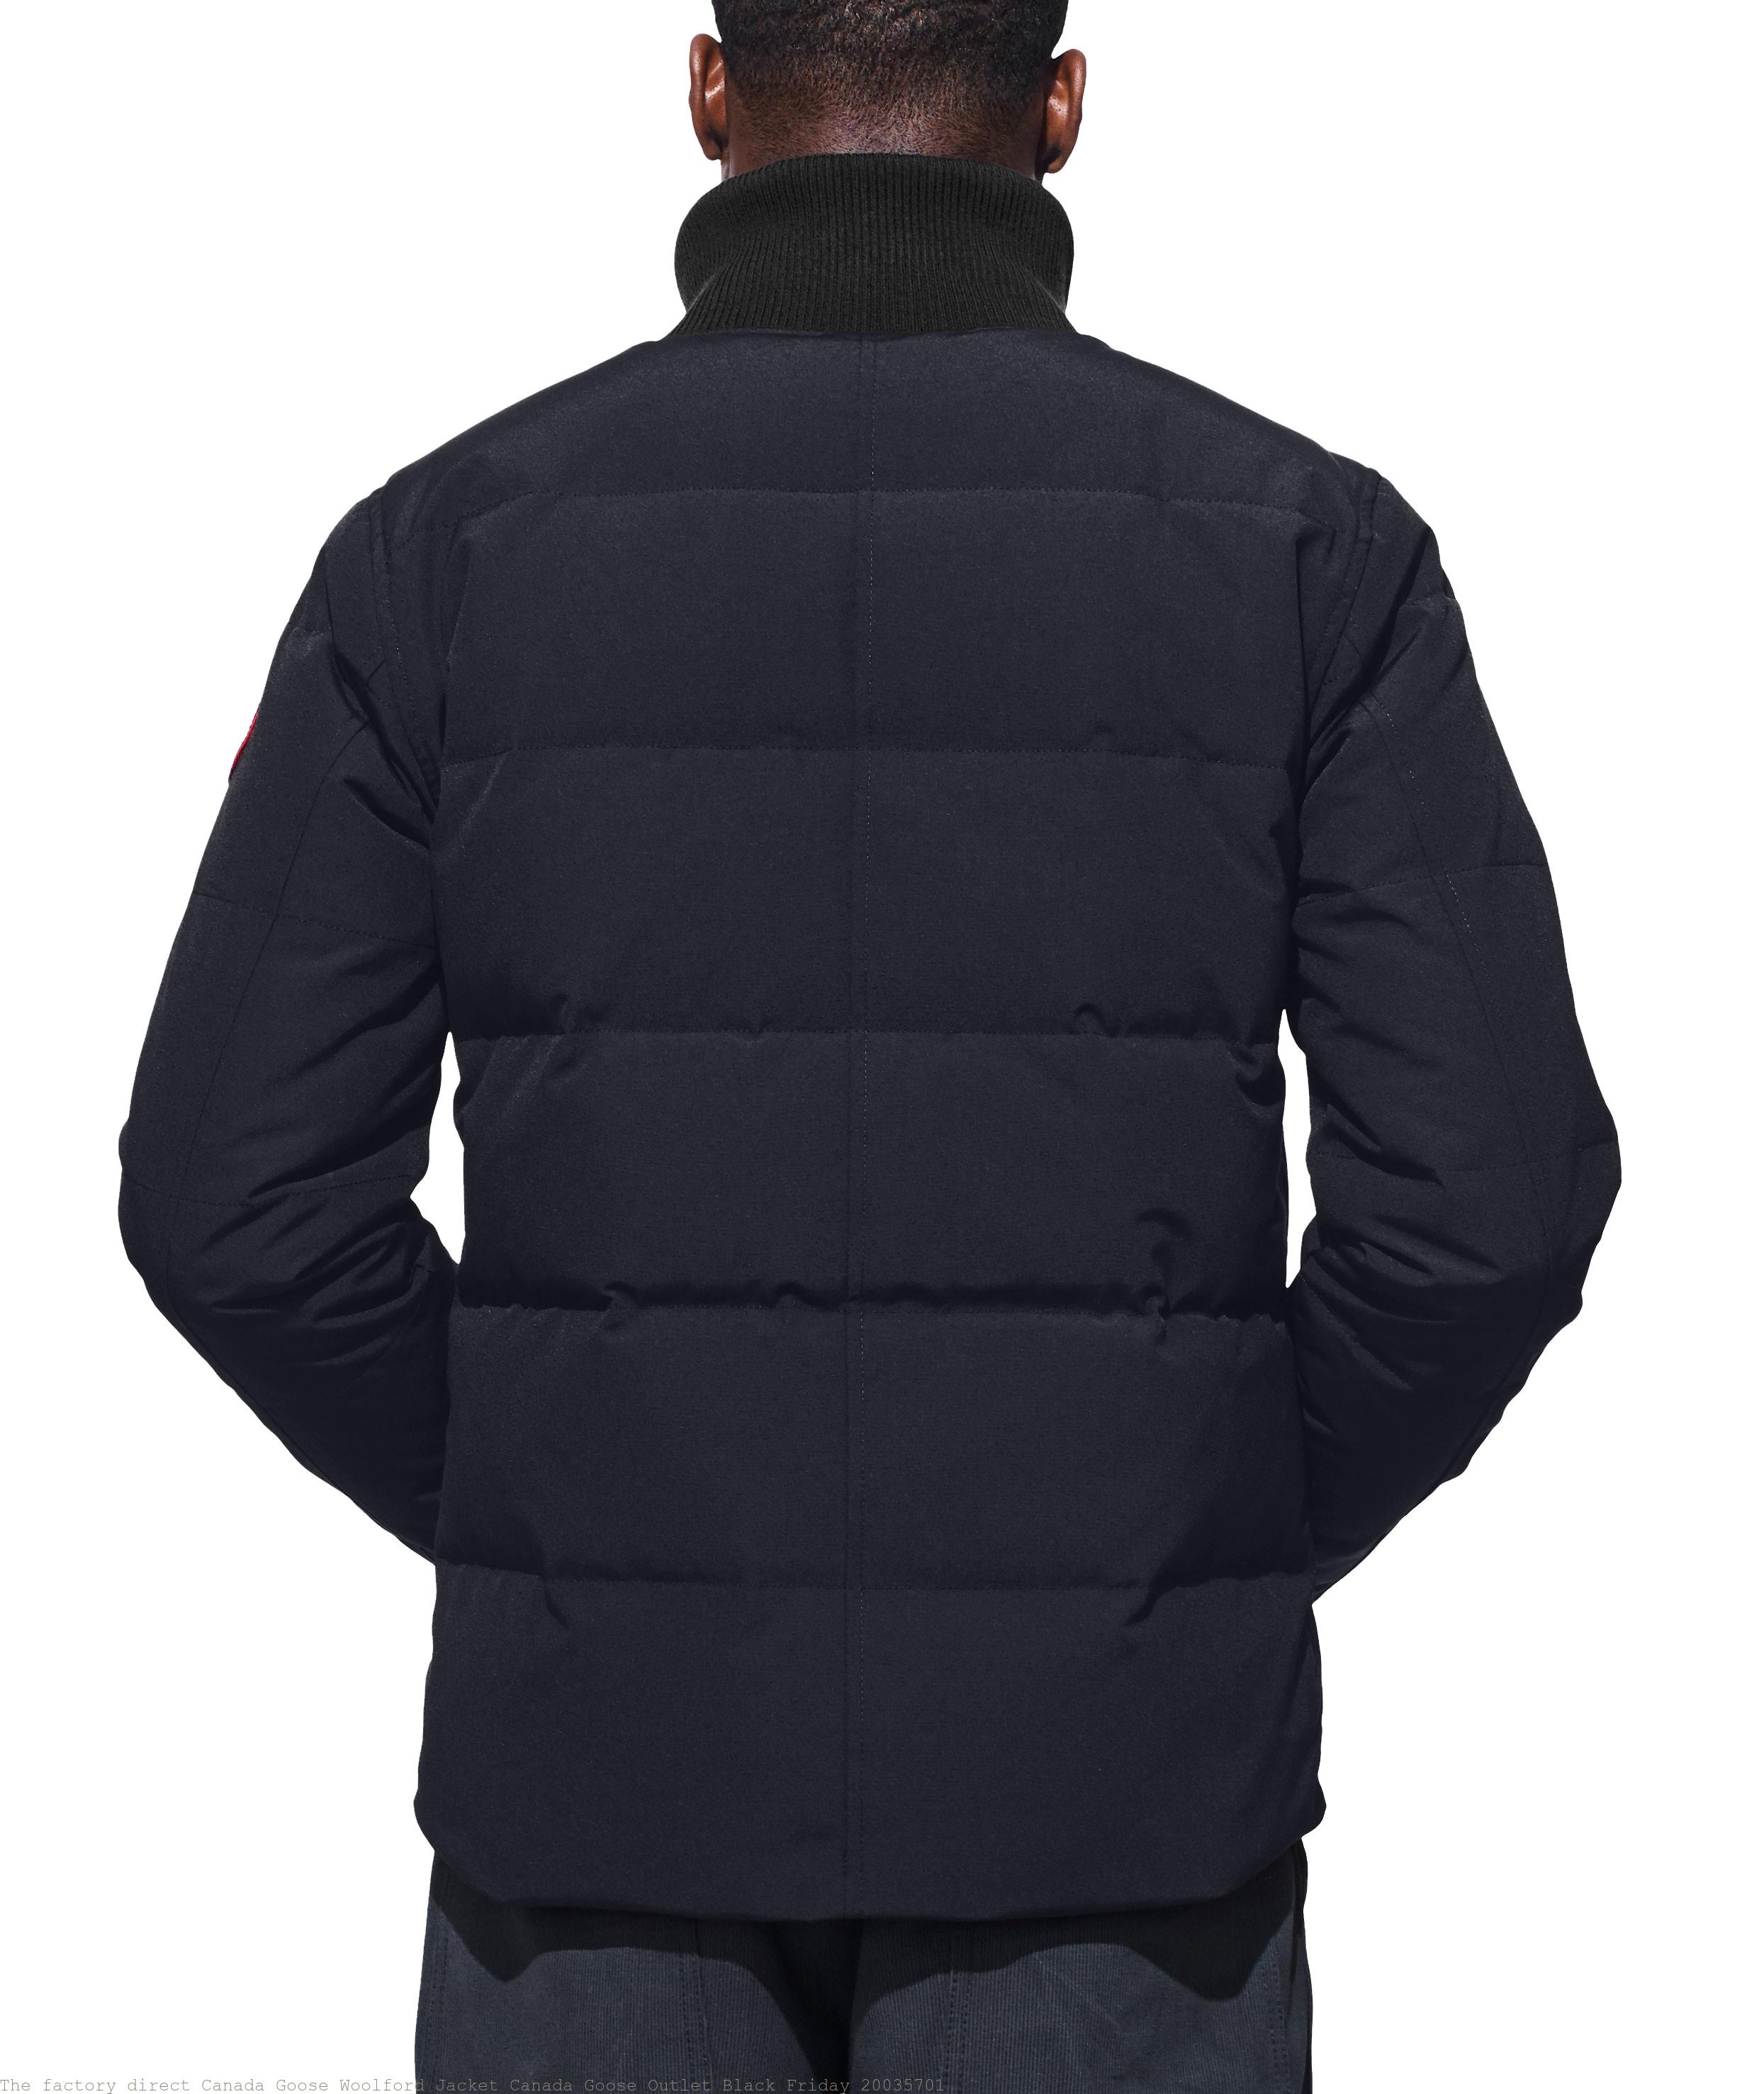 bcb9fb459af The factory direct Canada Goose Woolford Jacket Canada Goose Outlet Black  Friday 20035701 – Cheap Canada Goose® Outlet Sale – Black Canada Goose  Jacket